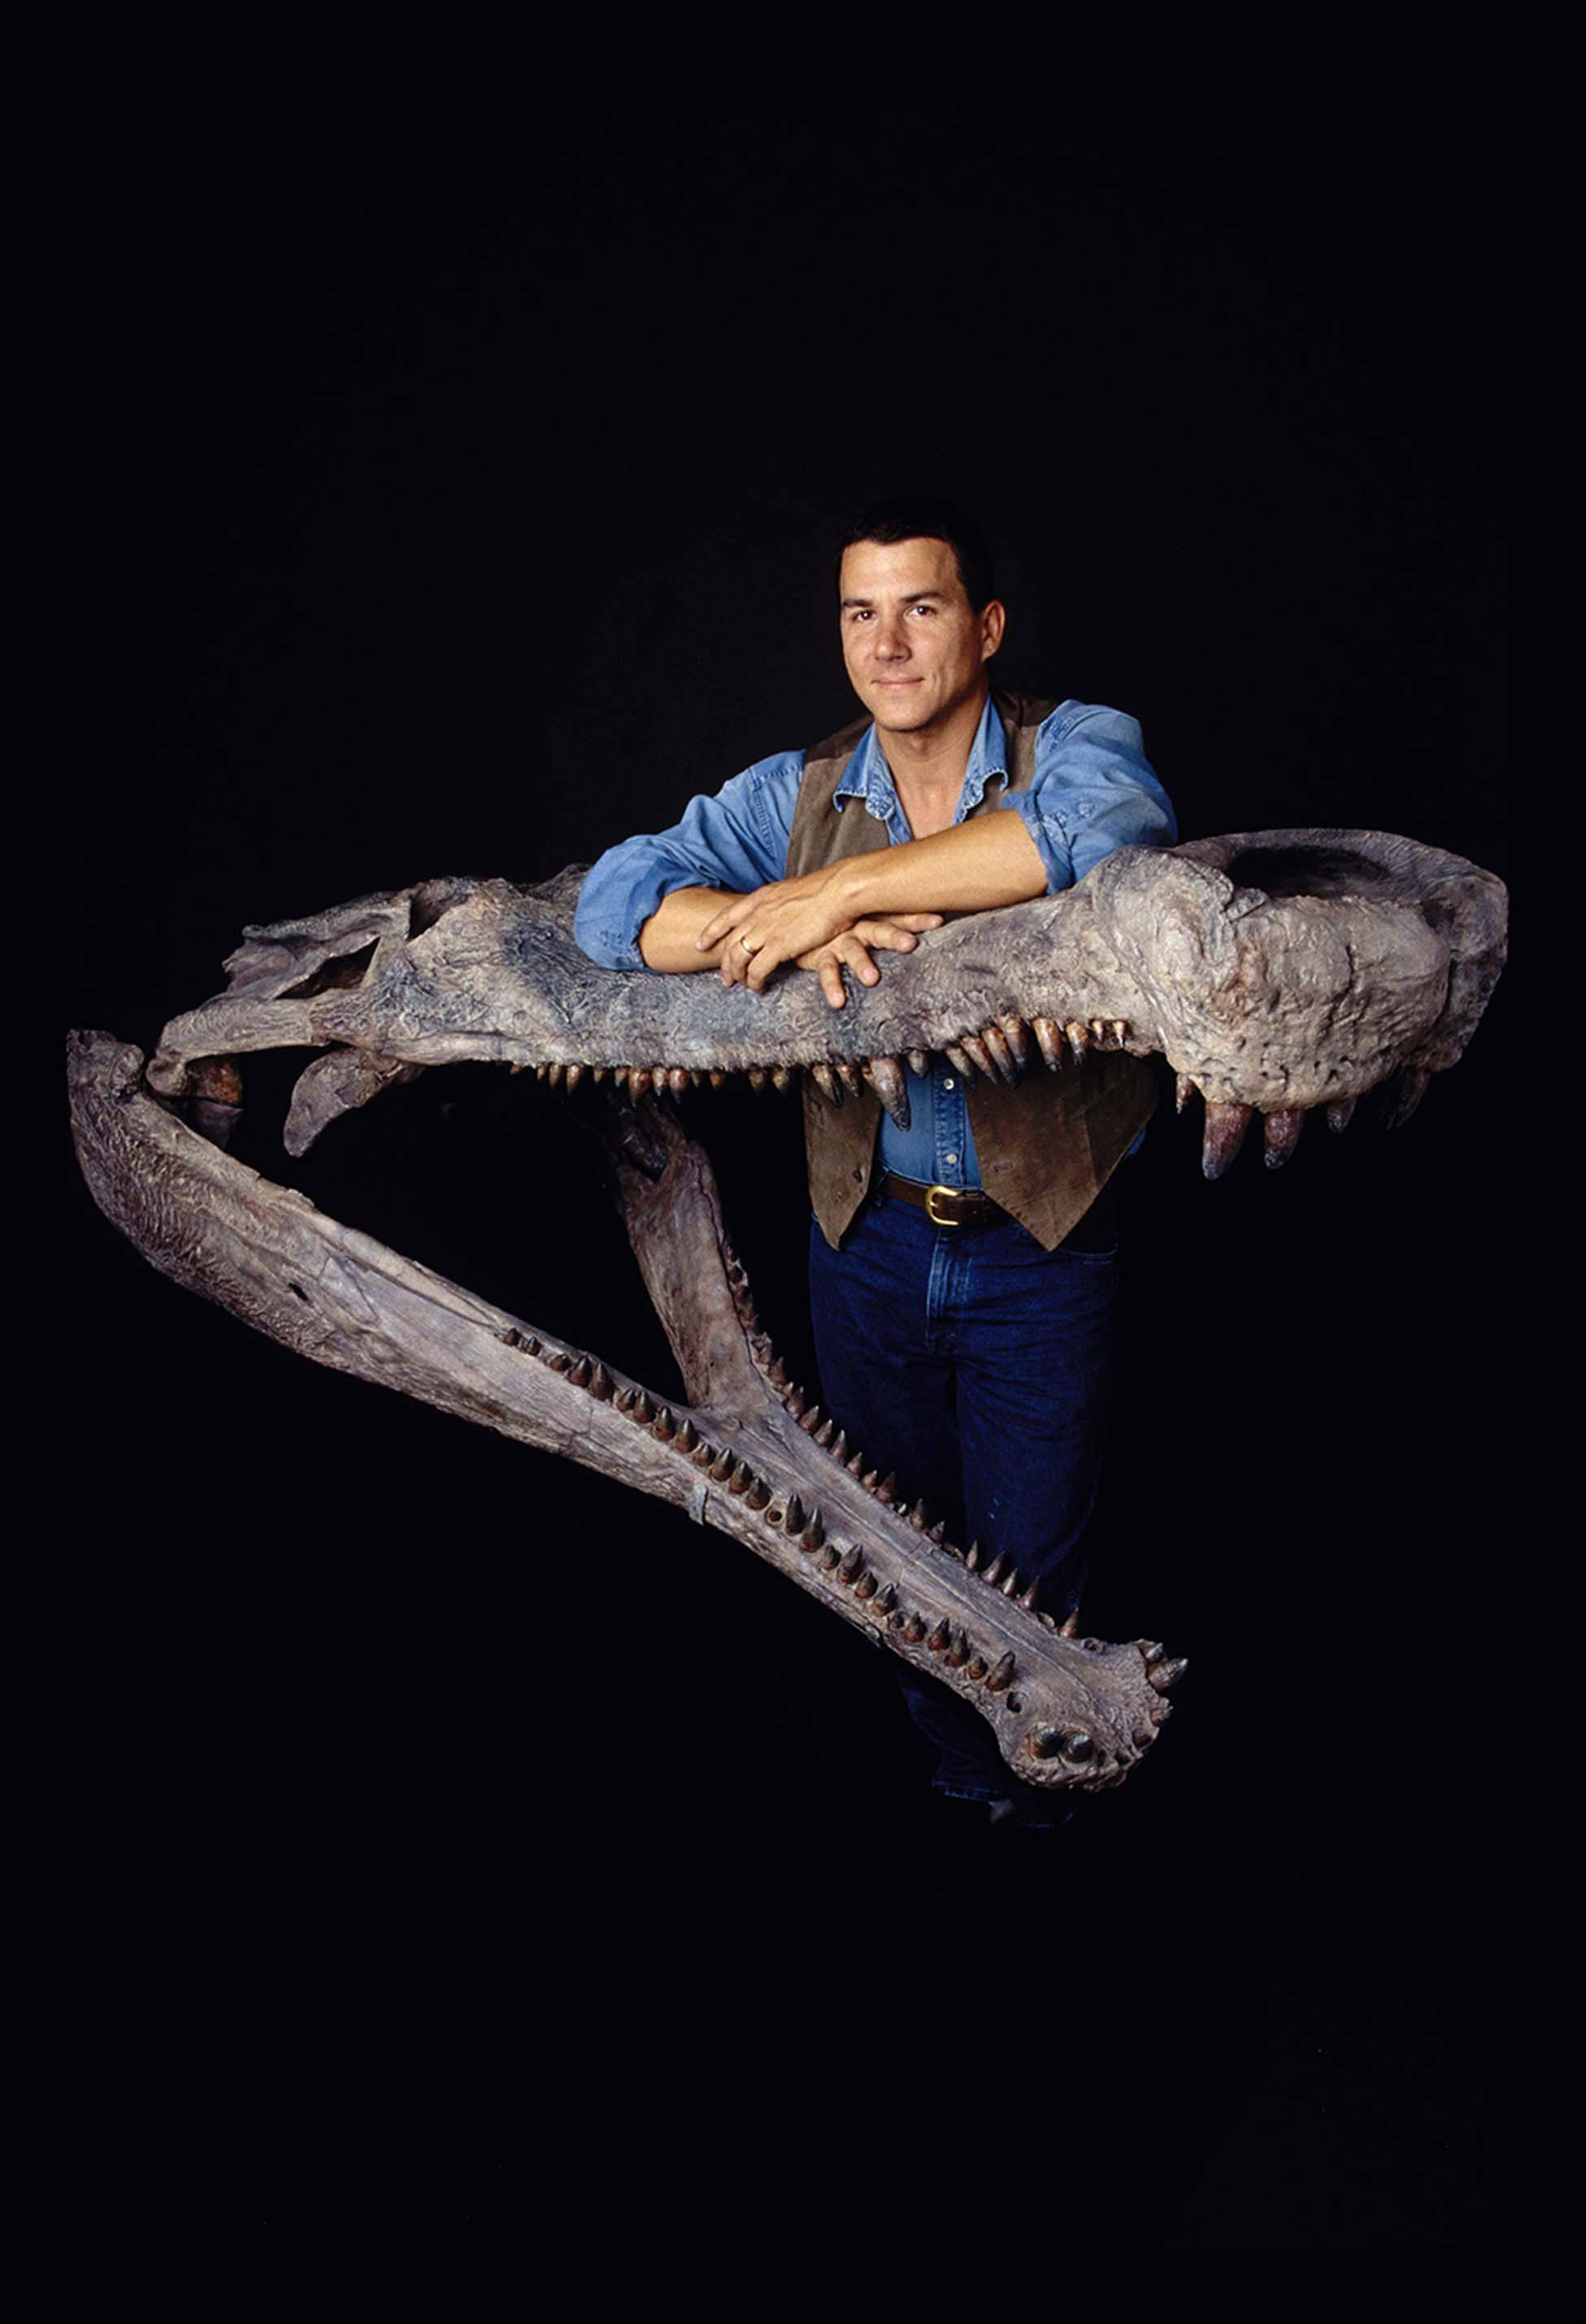 Paul Sereno, co-founder of Project Exploration based in Chicago, stands with the original 110-million-year-old fossil skull of SuperCroc. The exhibit featuring 40-foot crocodiles is headed in early May to Gail Borden Public Library in Elgin.